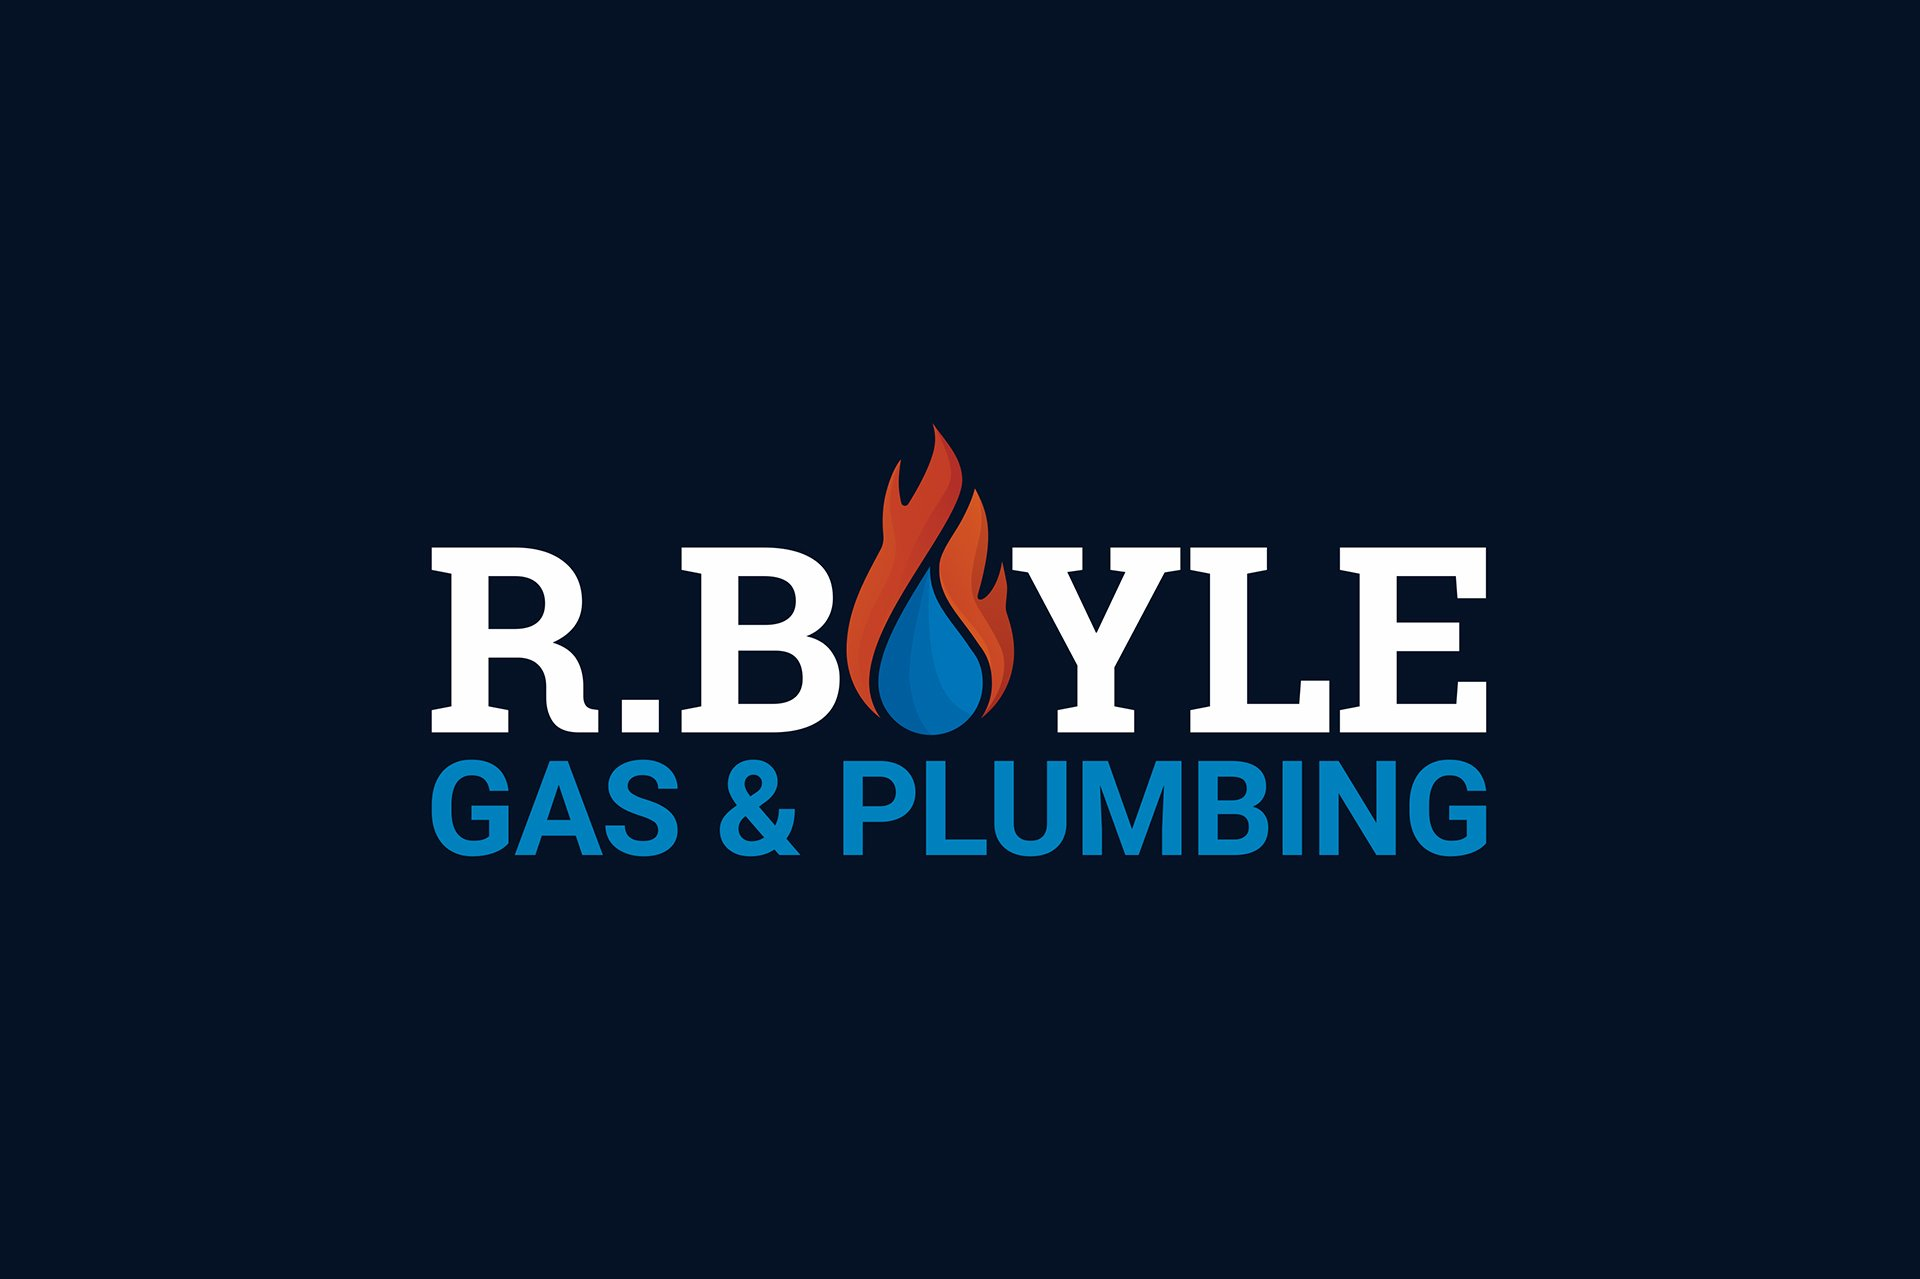 R.Boyle Gas and Plumbing Logo